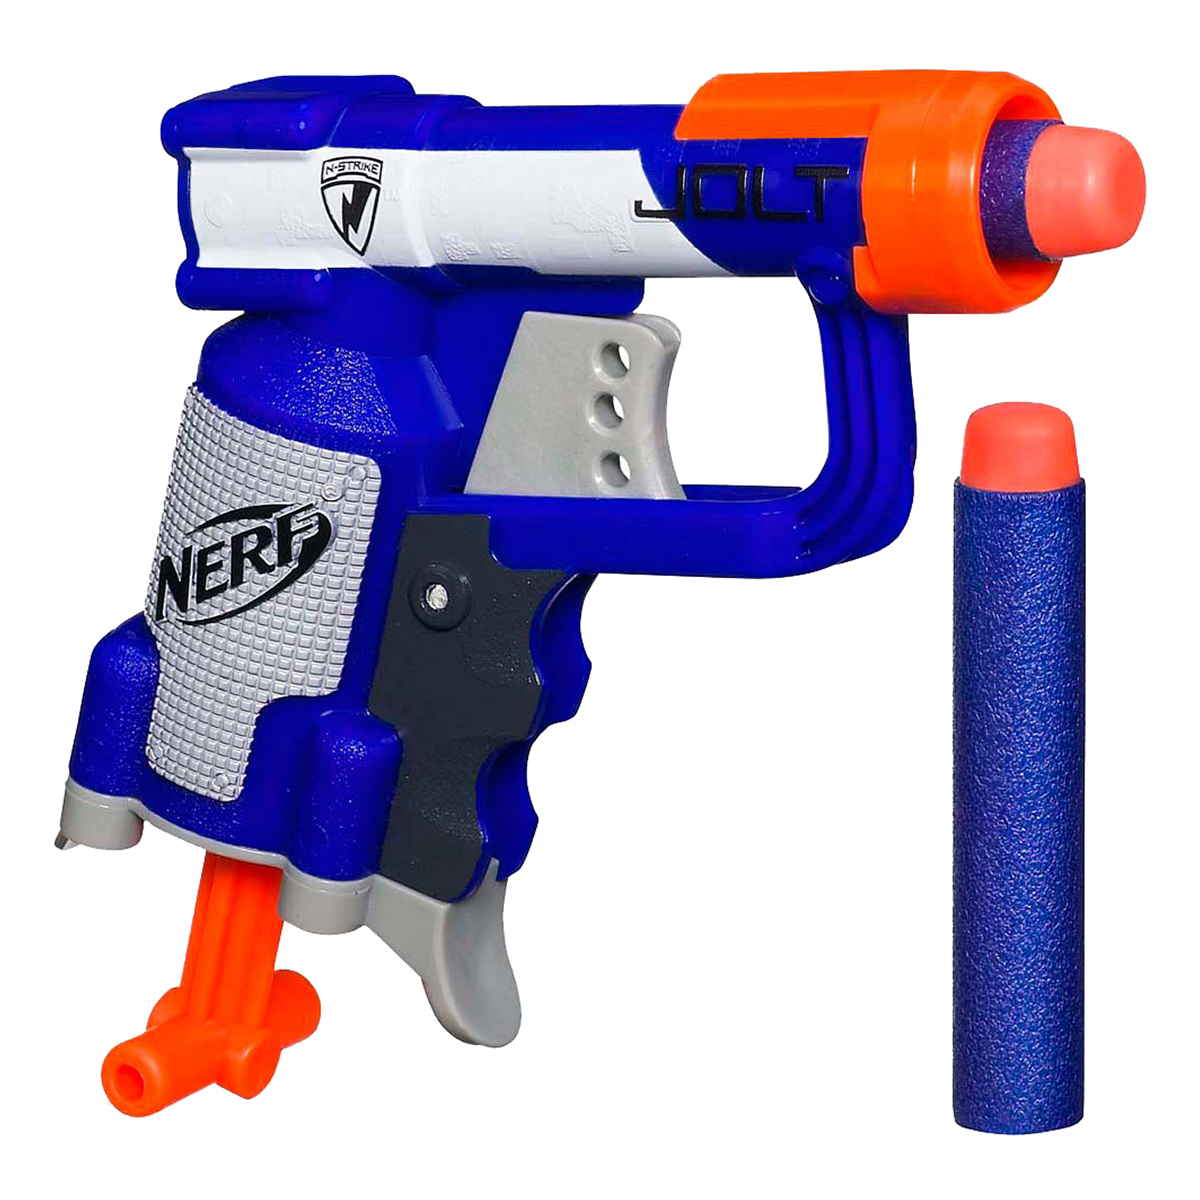 Blaster Nerf N-Strike Jolt 0707 imagine